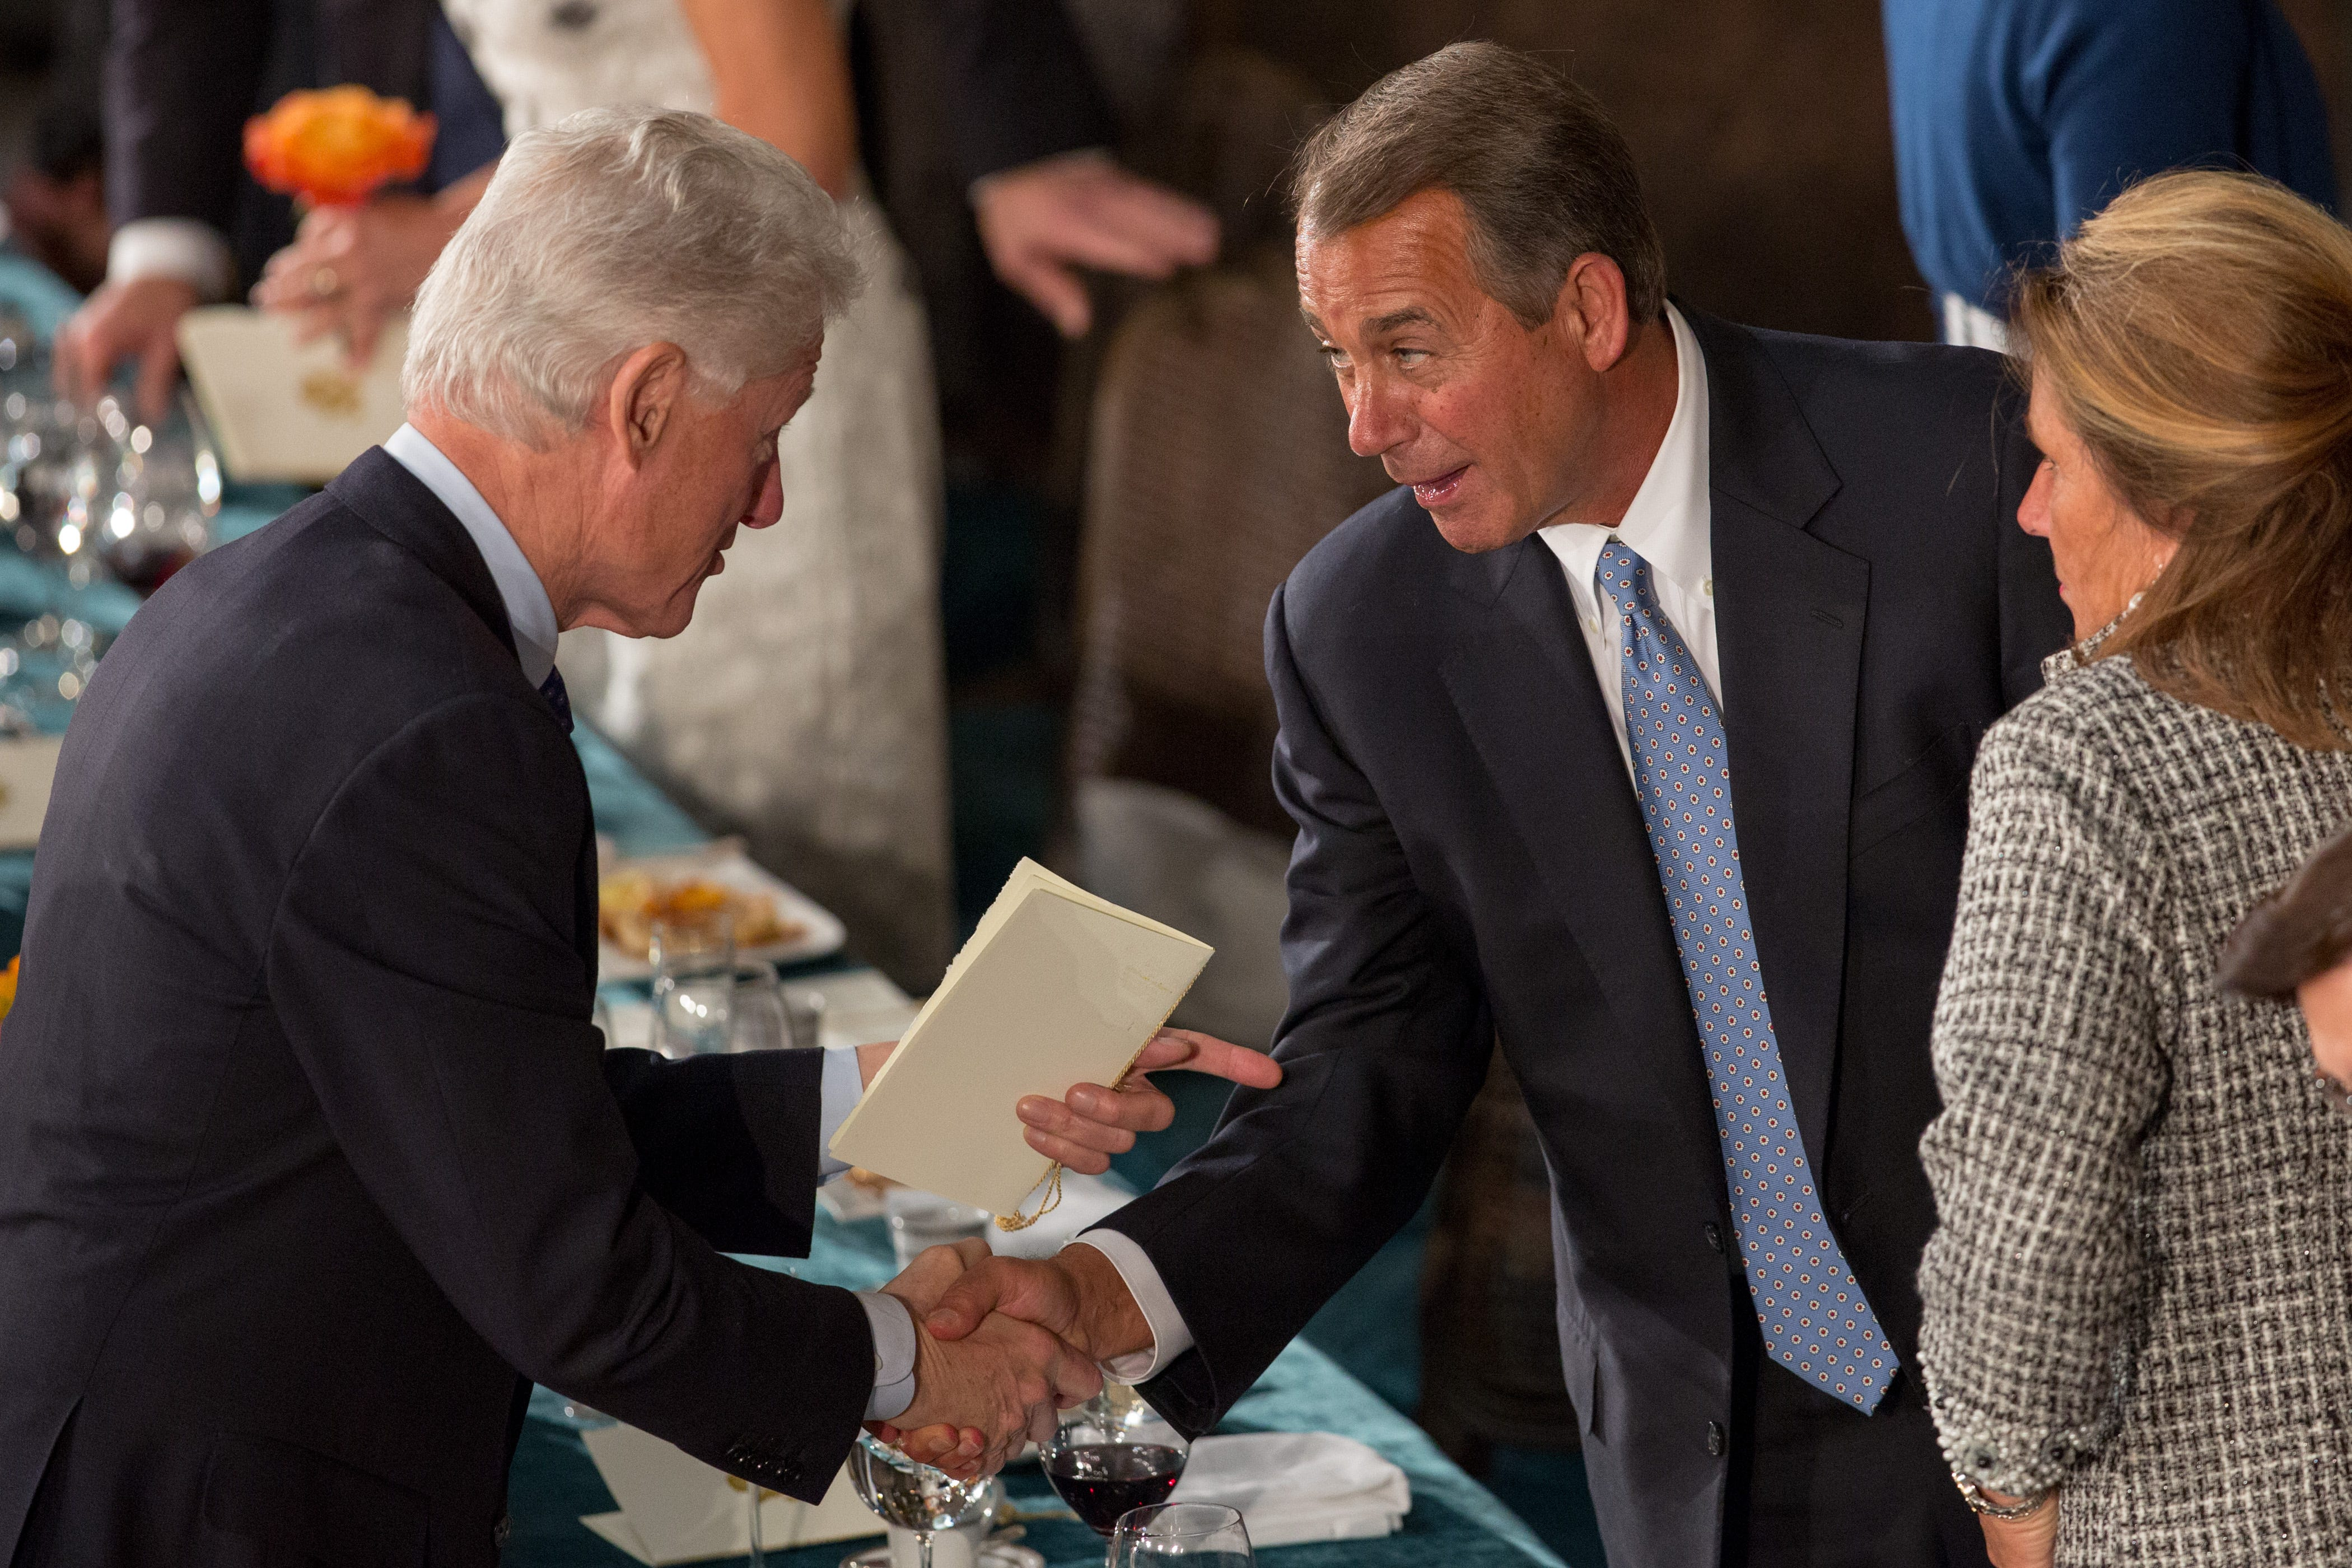 Former President Bill Clinton shakes hands with John Boehner in January of 2013.